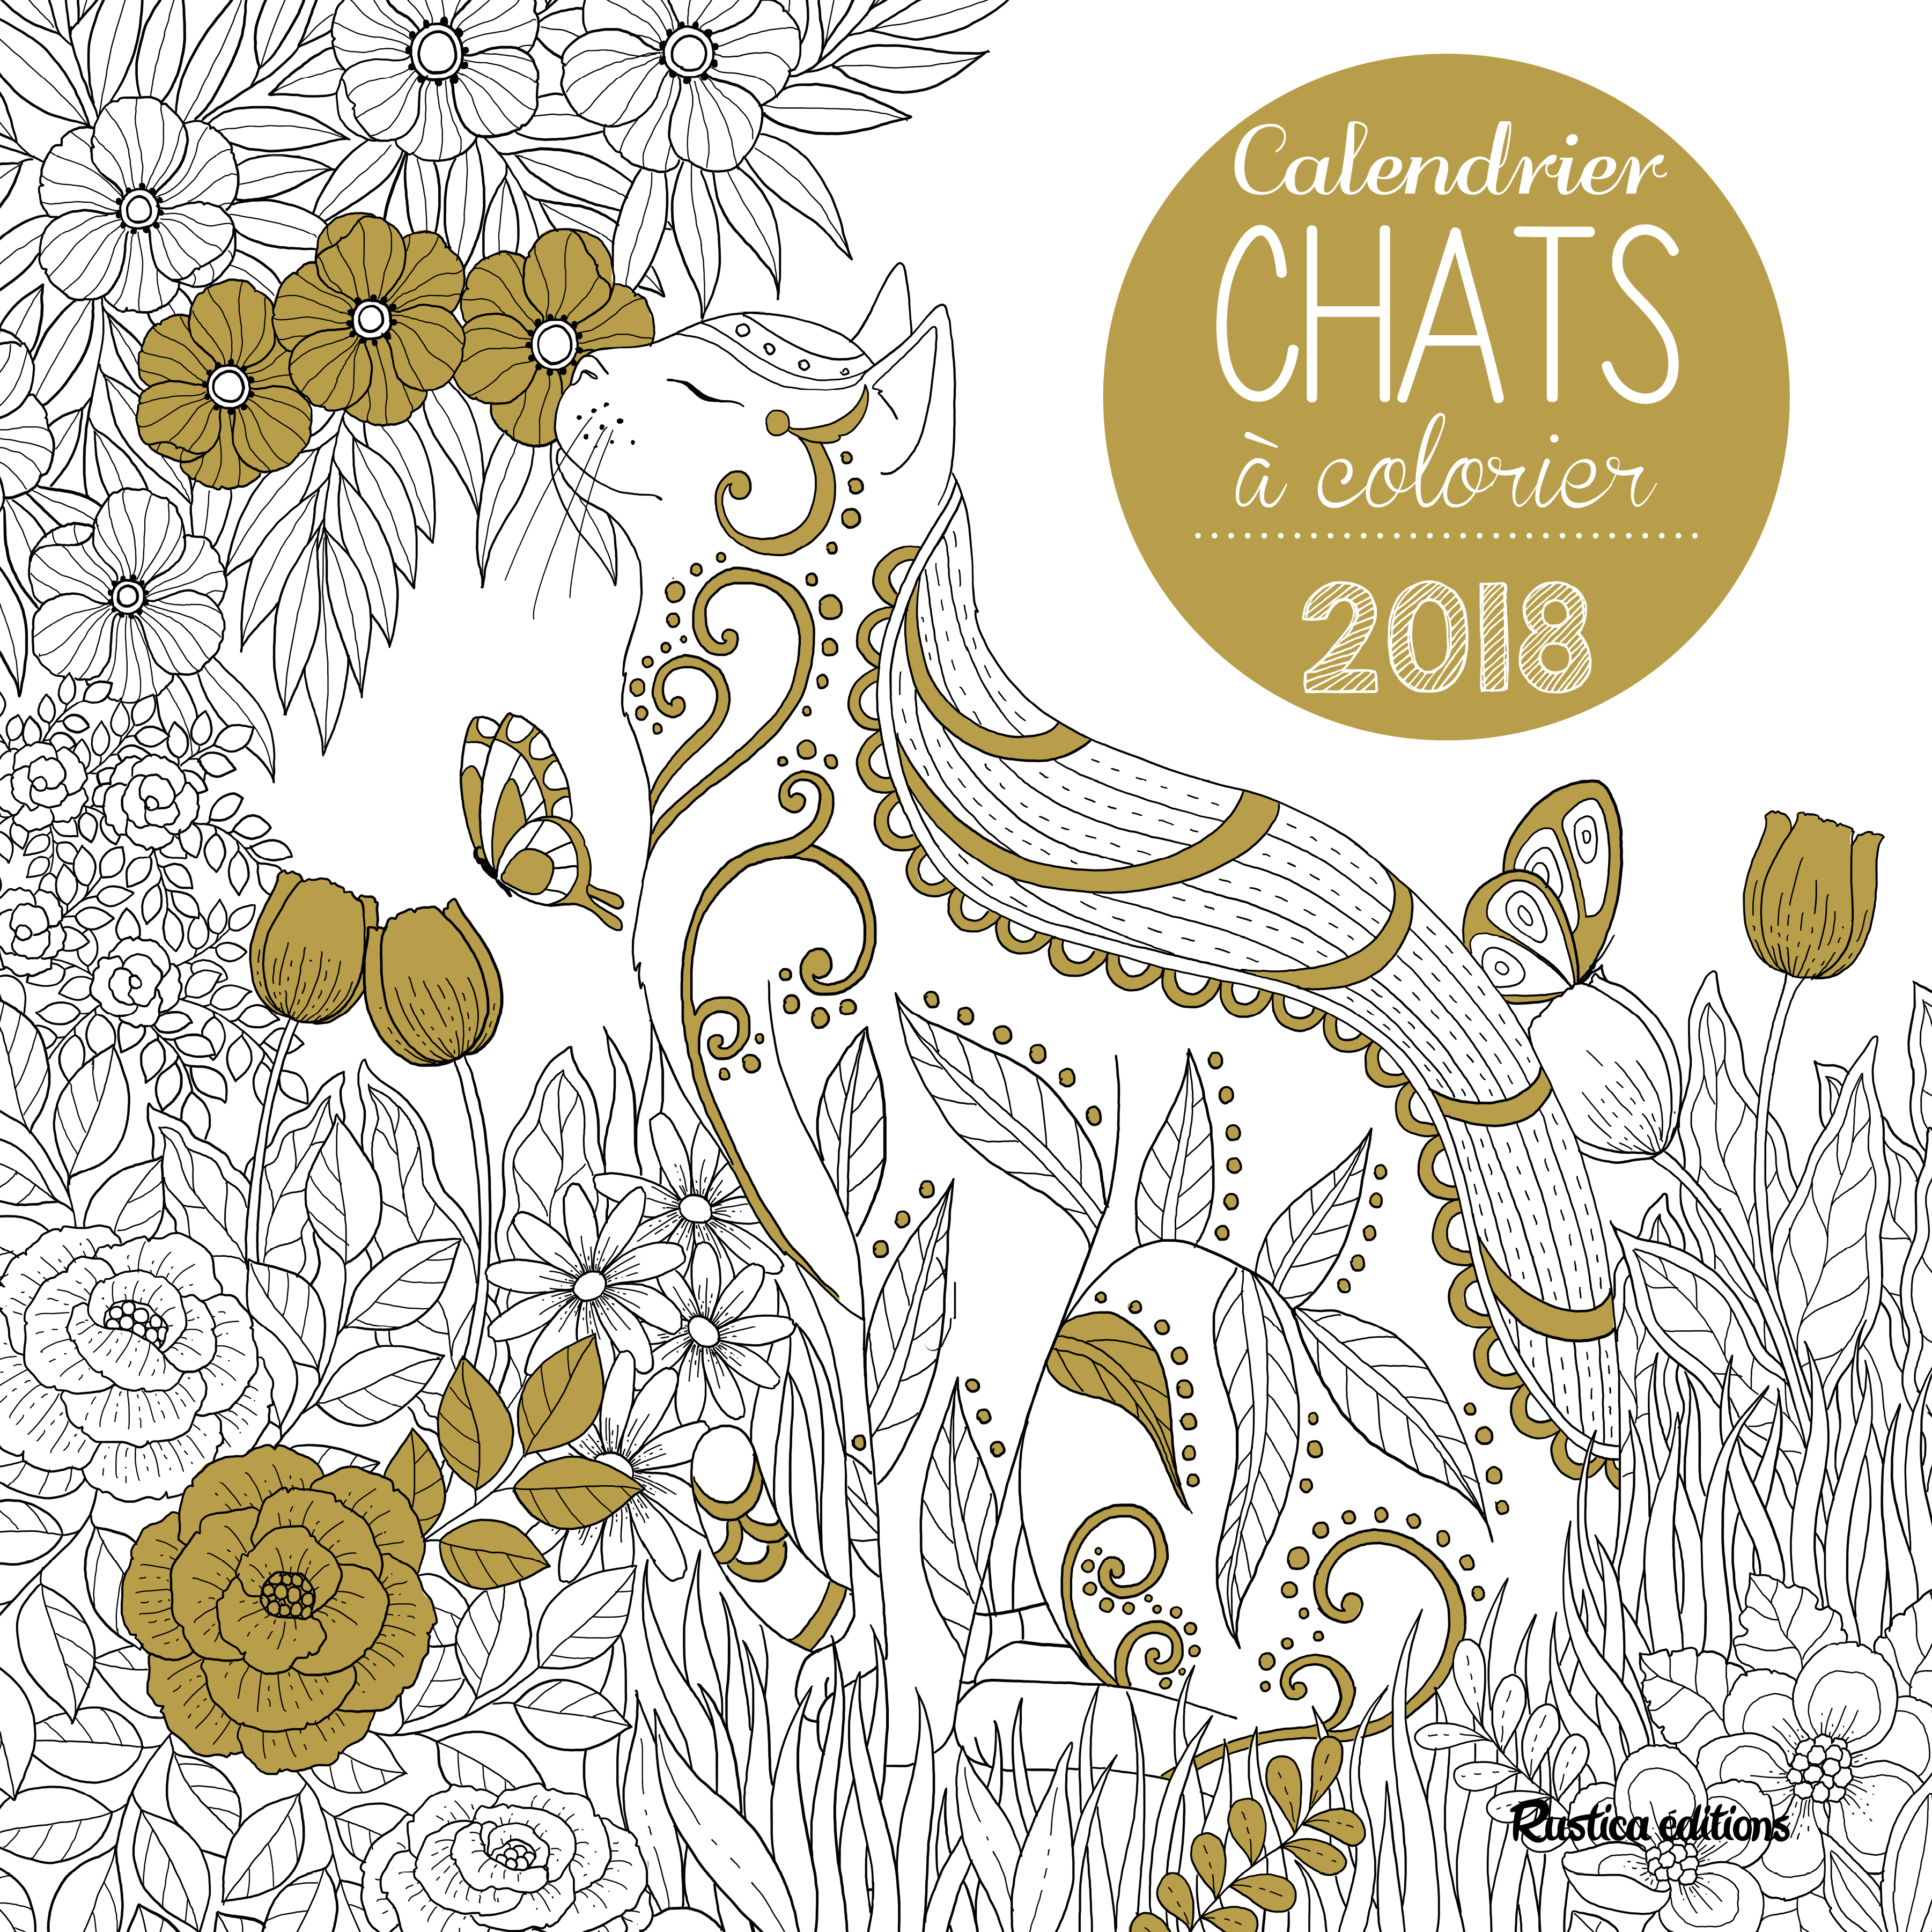 CALENDRIER MURAL CHAT A COLORIER